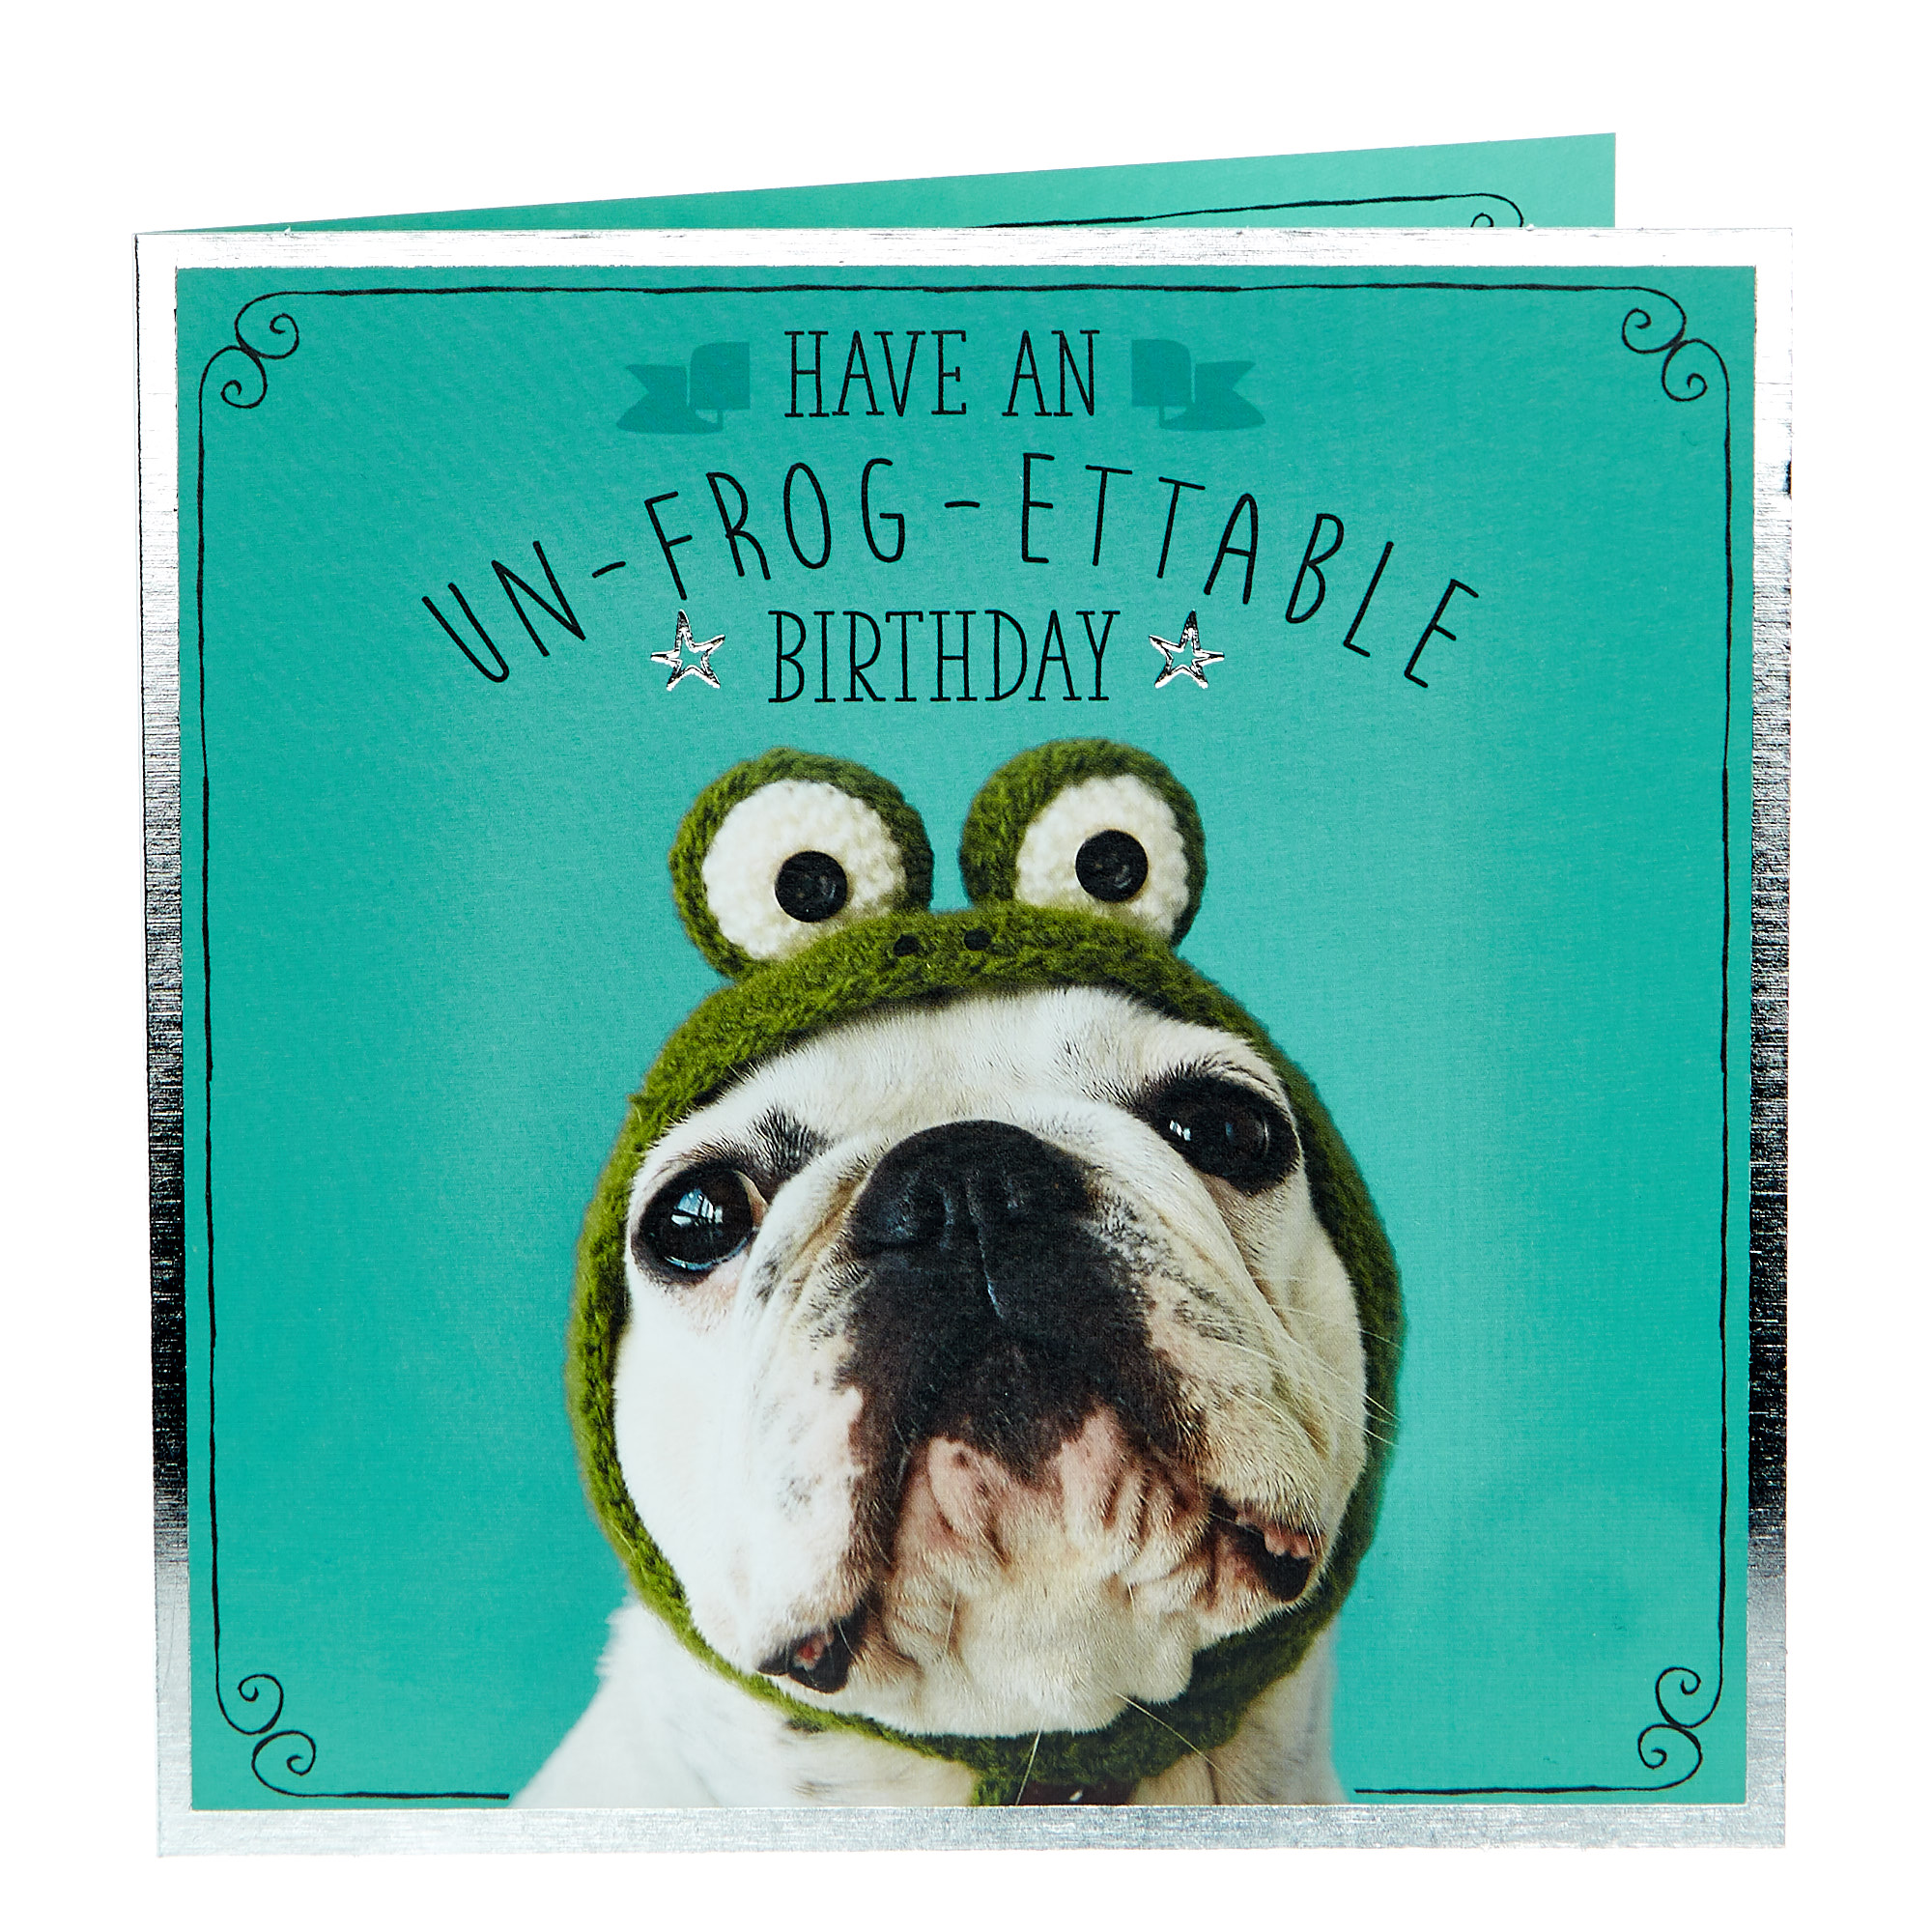 Birthday Card - Un-frog-ettable